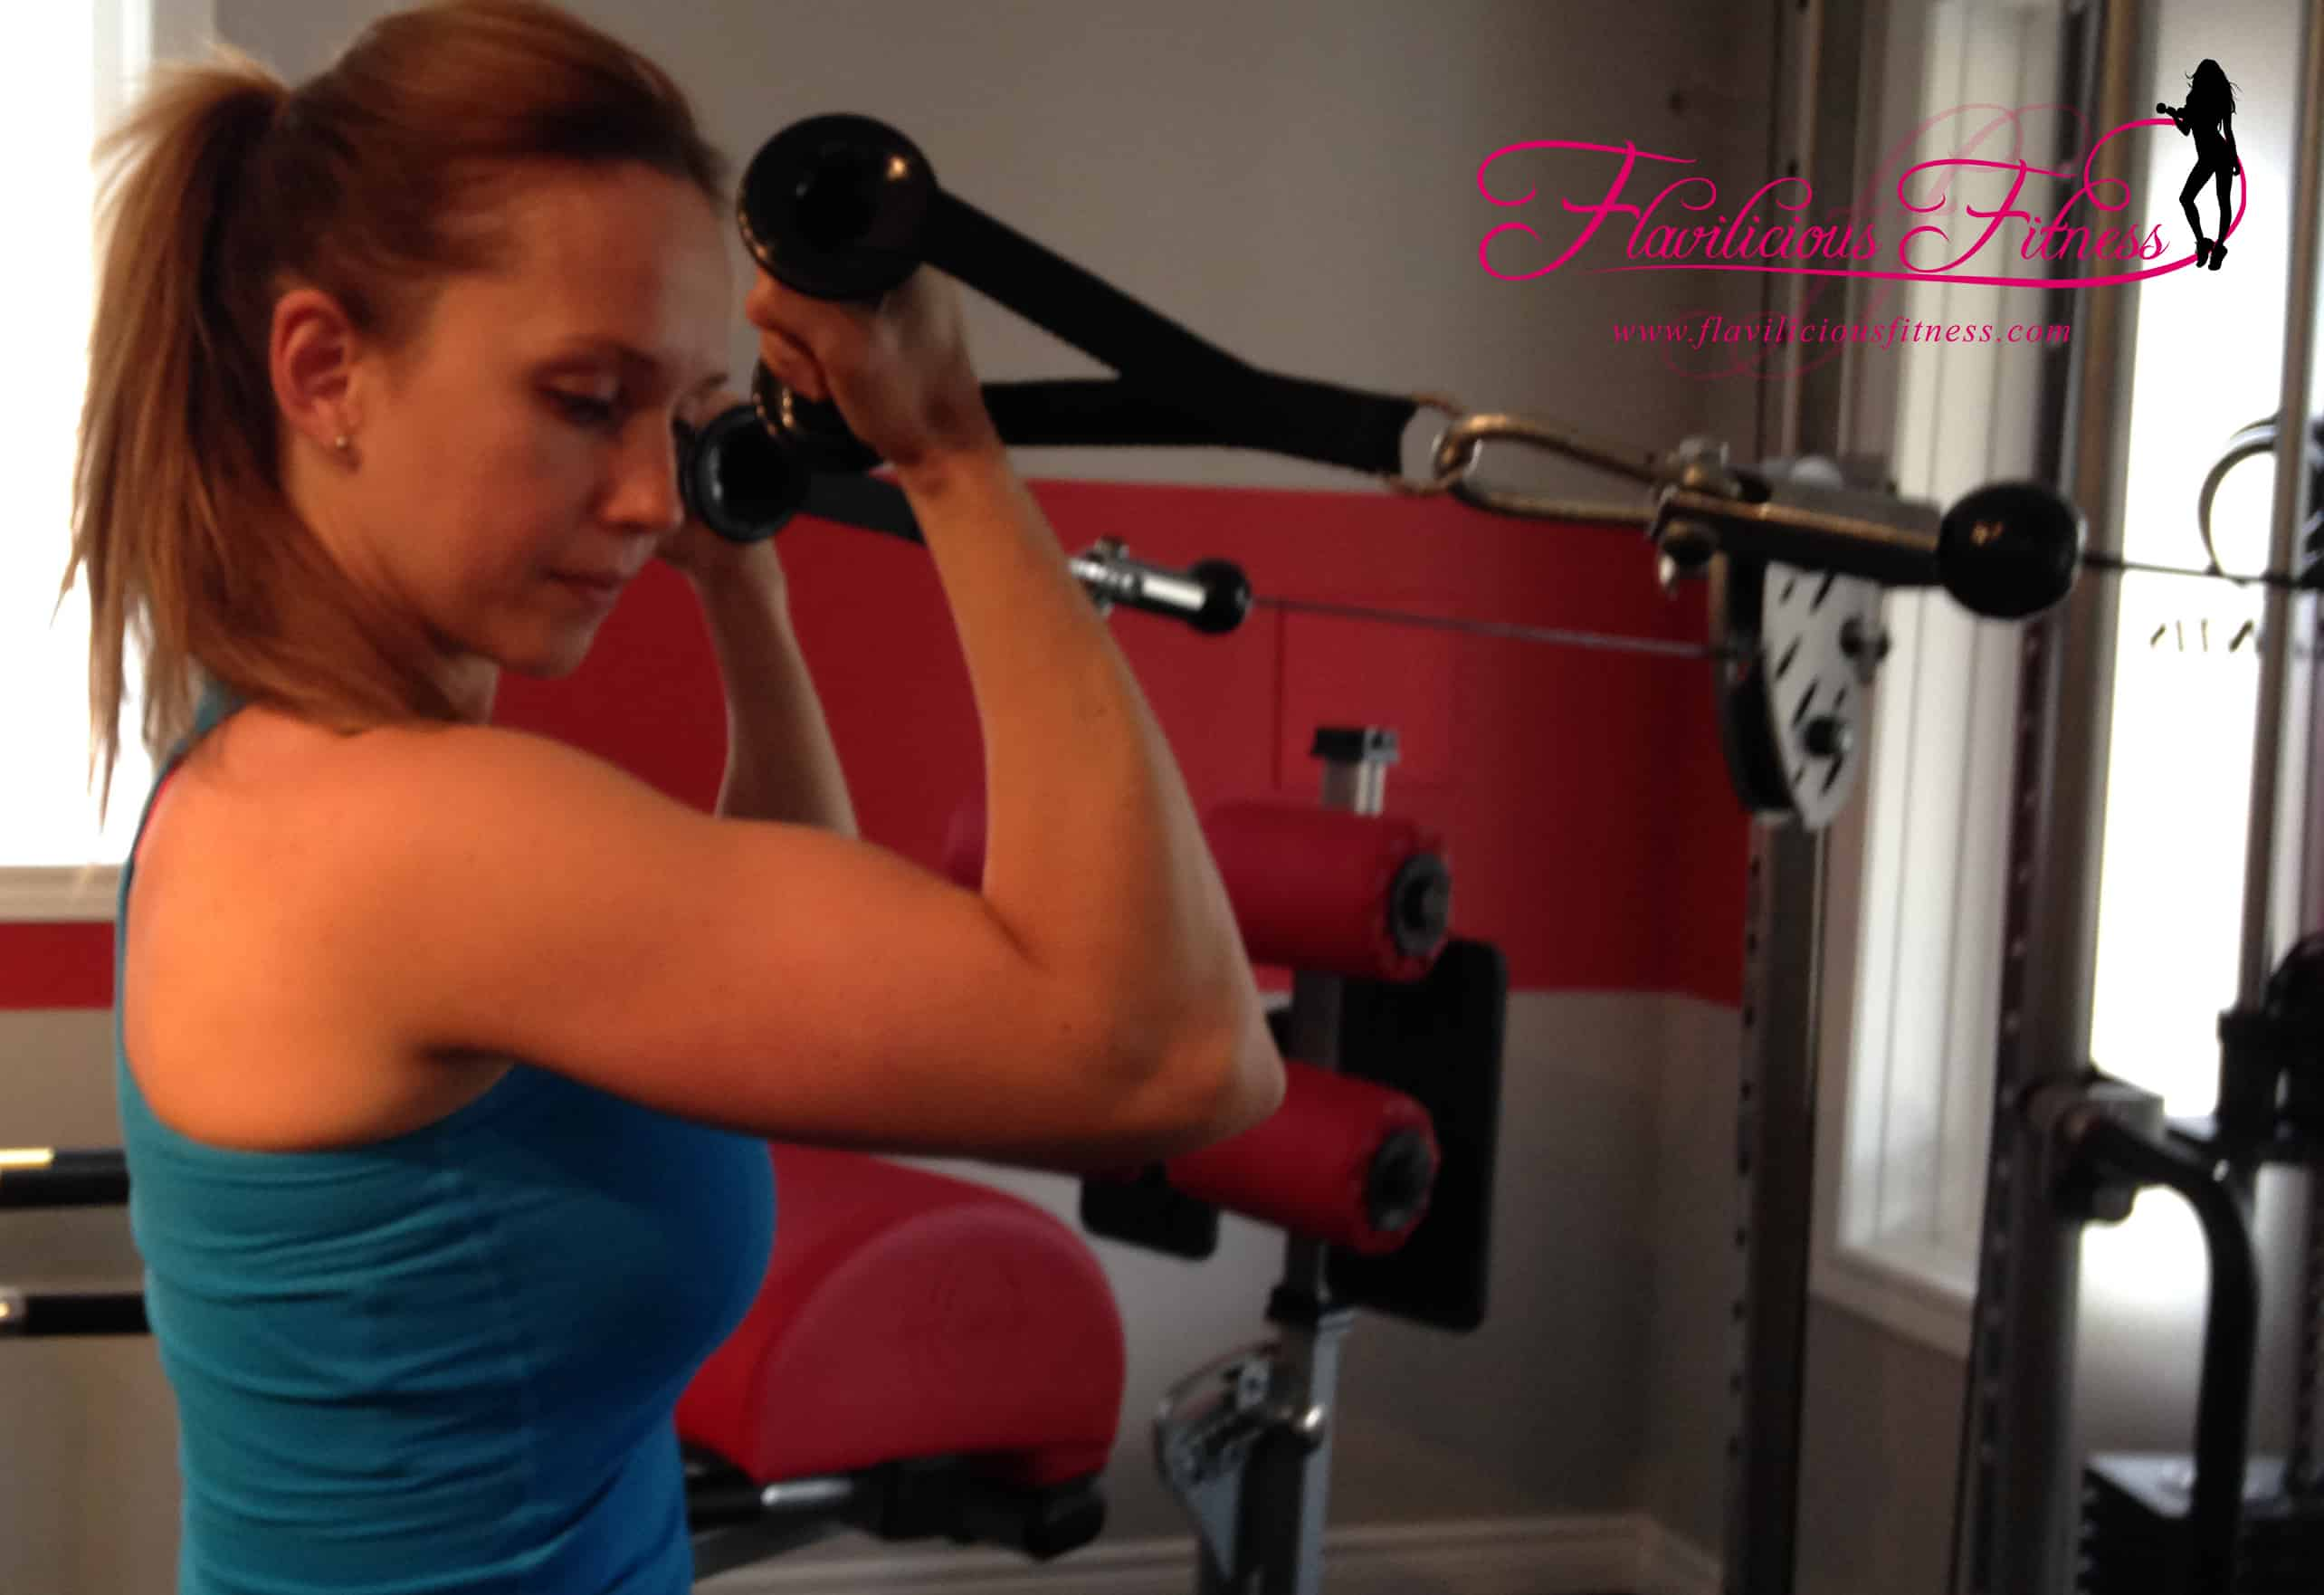 New Shapely Arms Workout Video